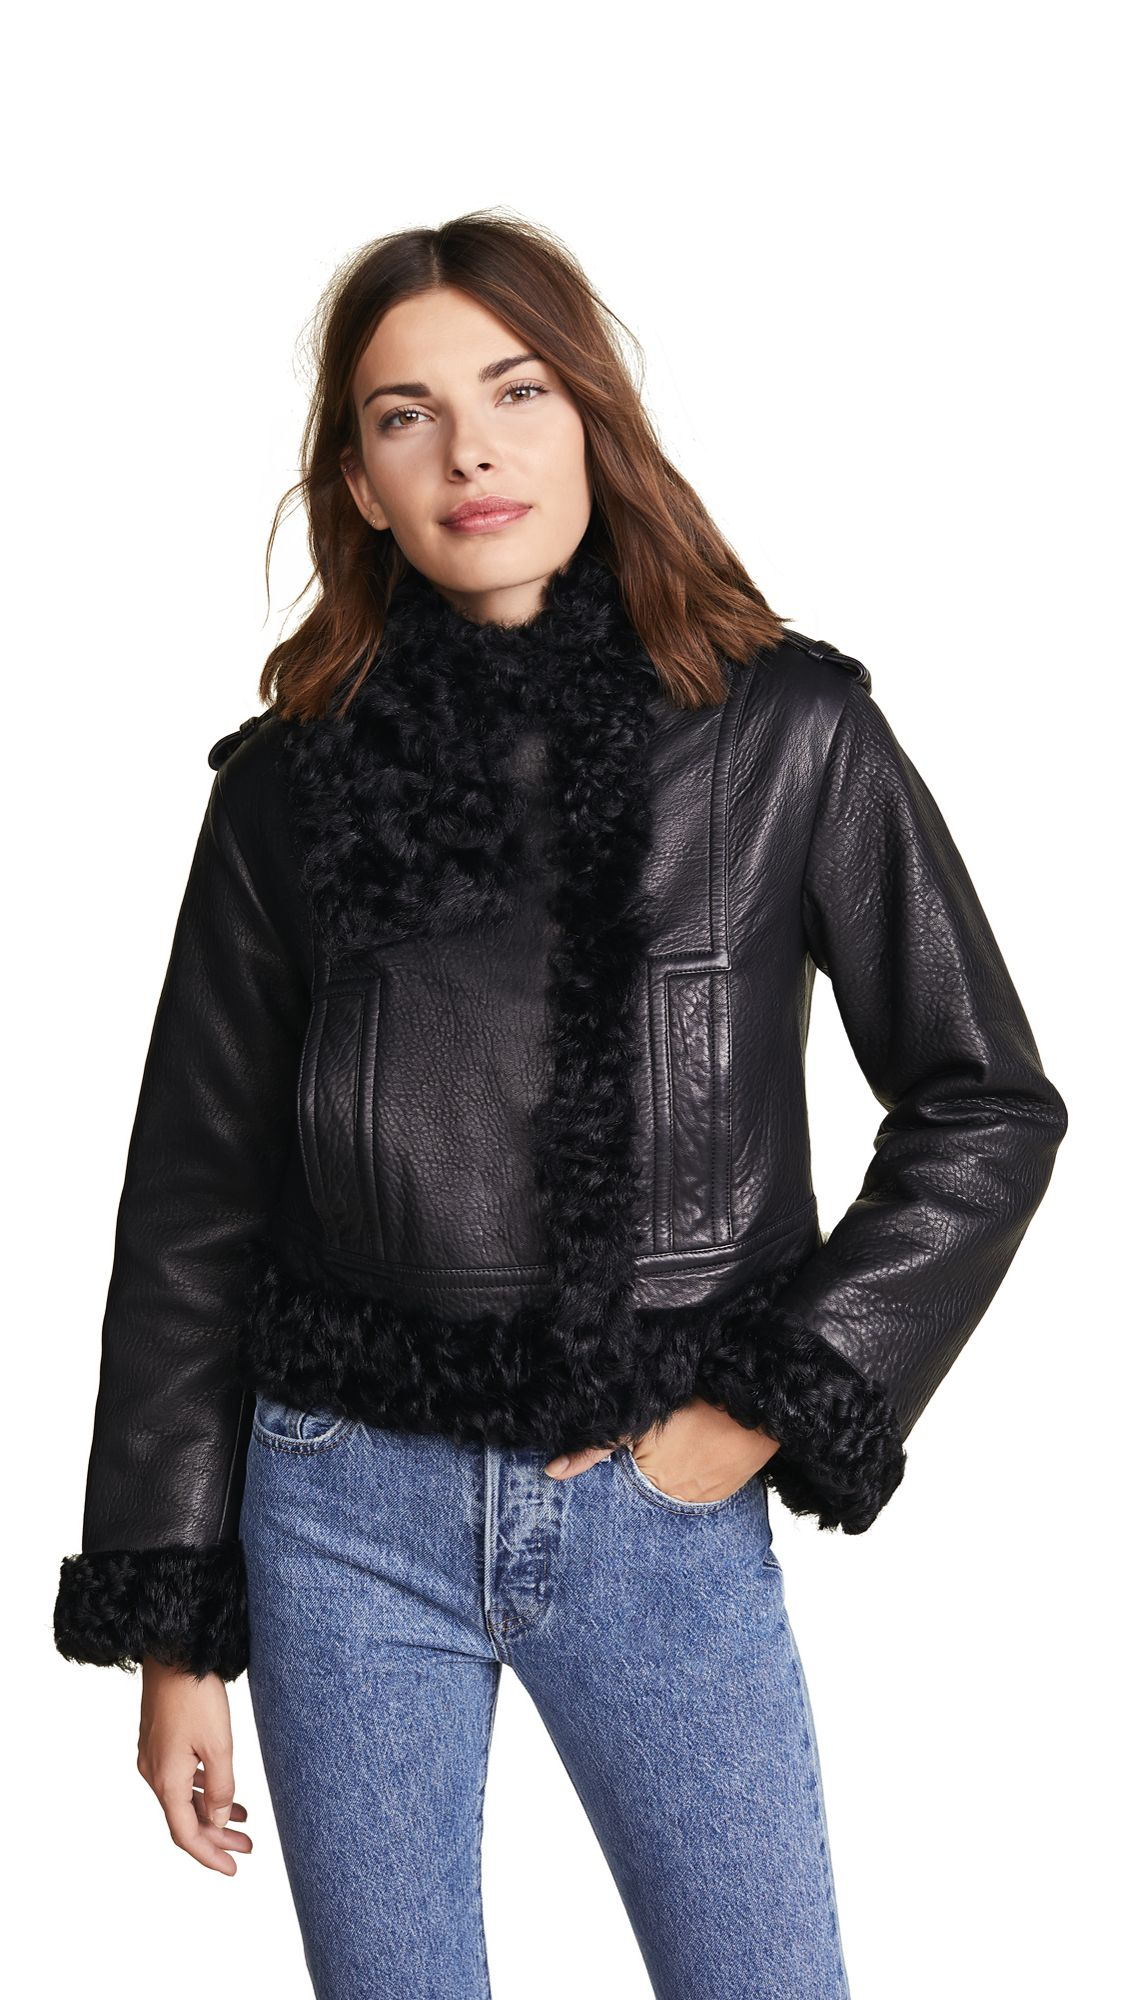 Leather Shearling Moto Jacket Fashion clothes women